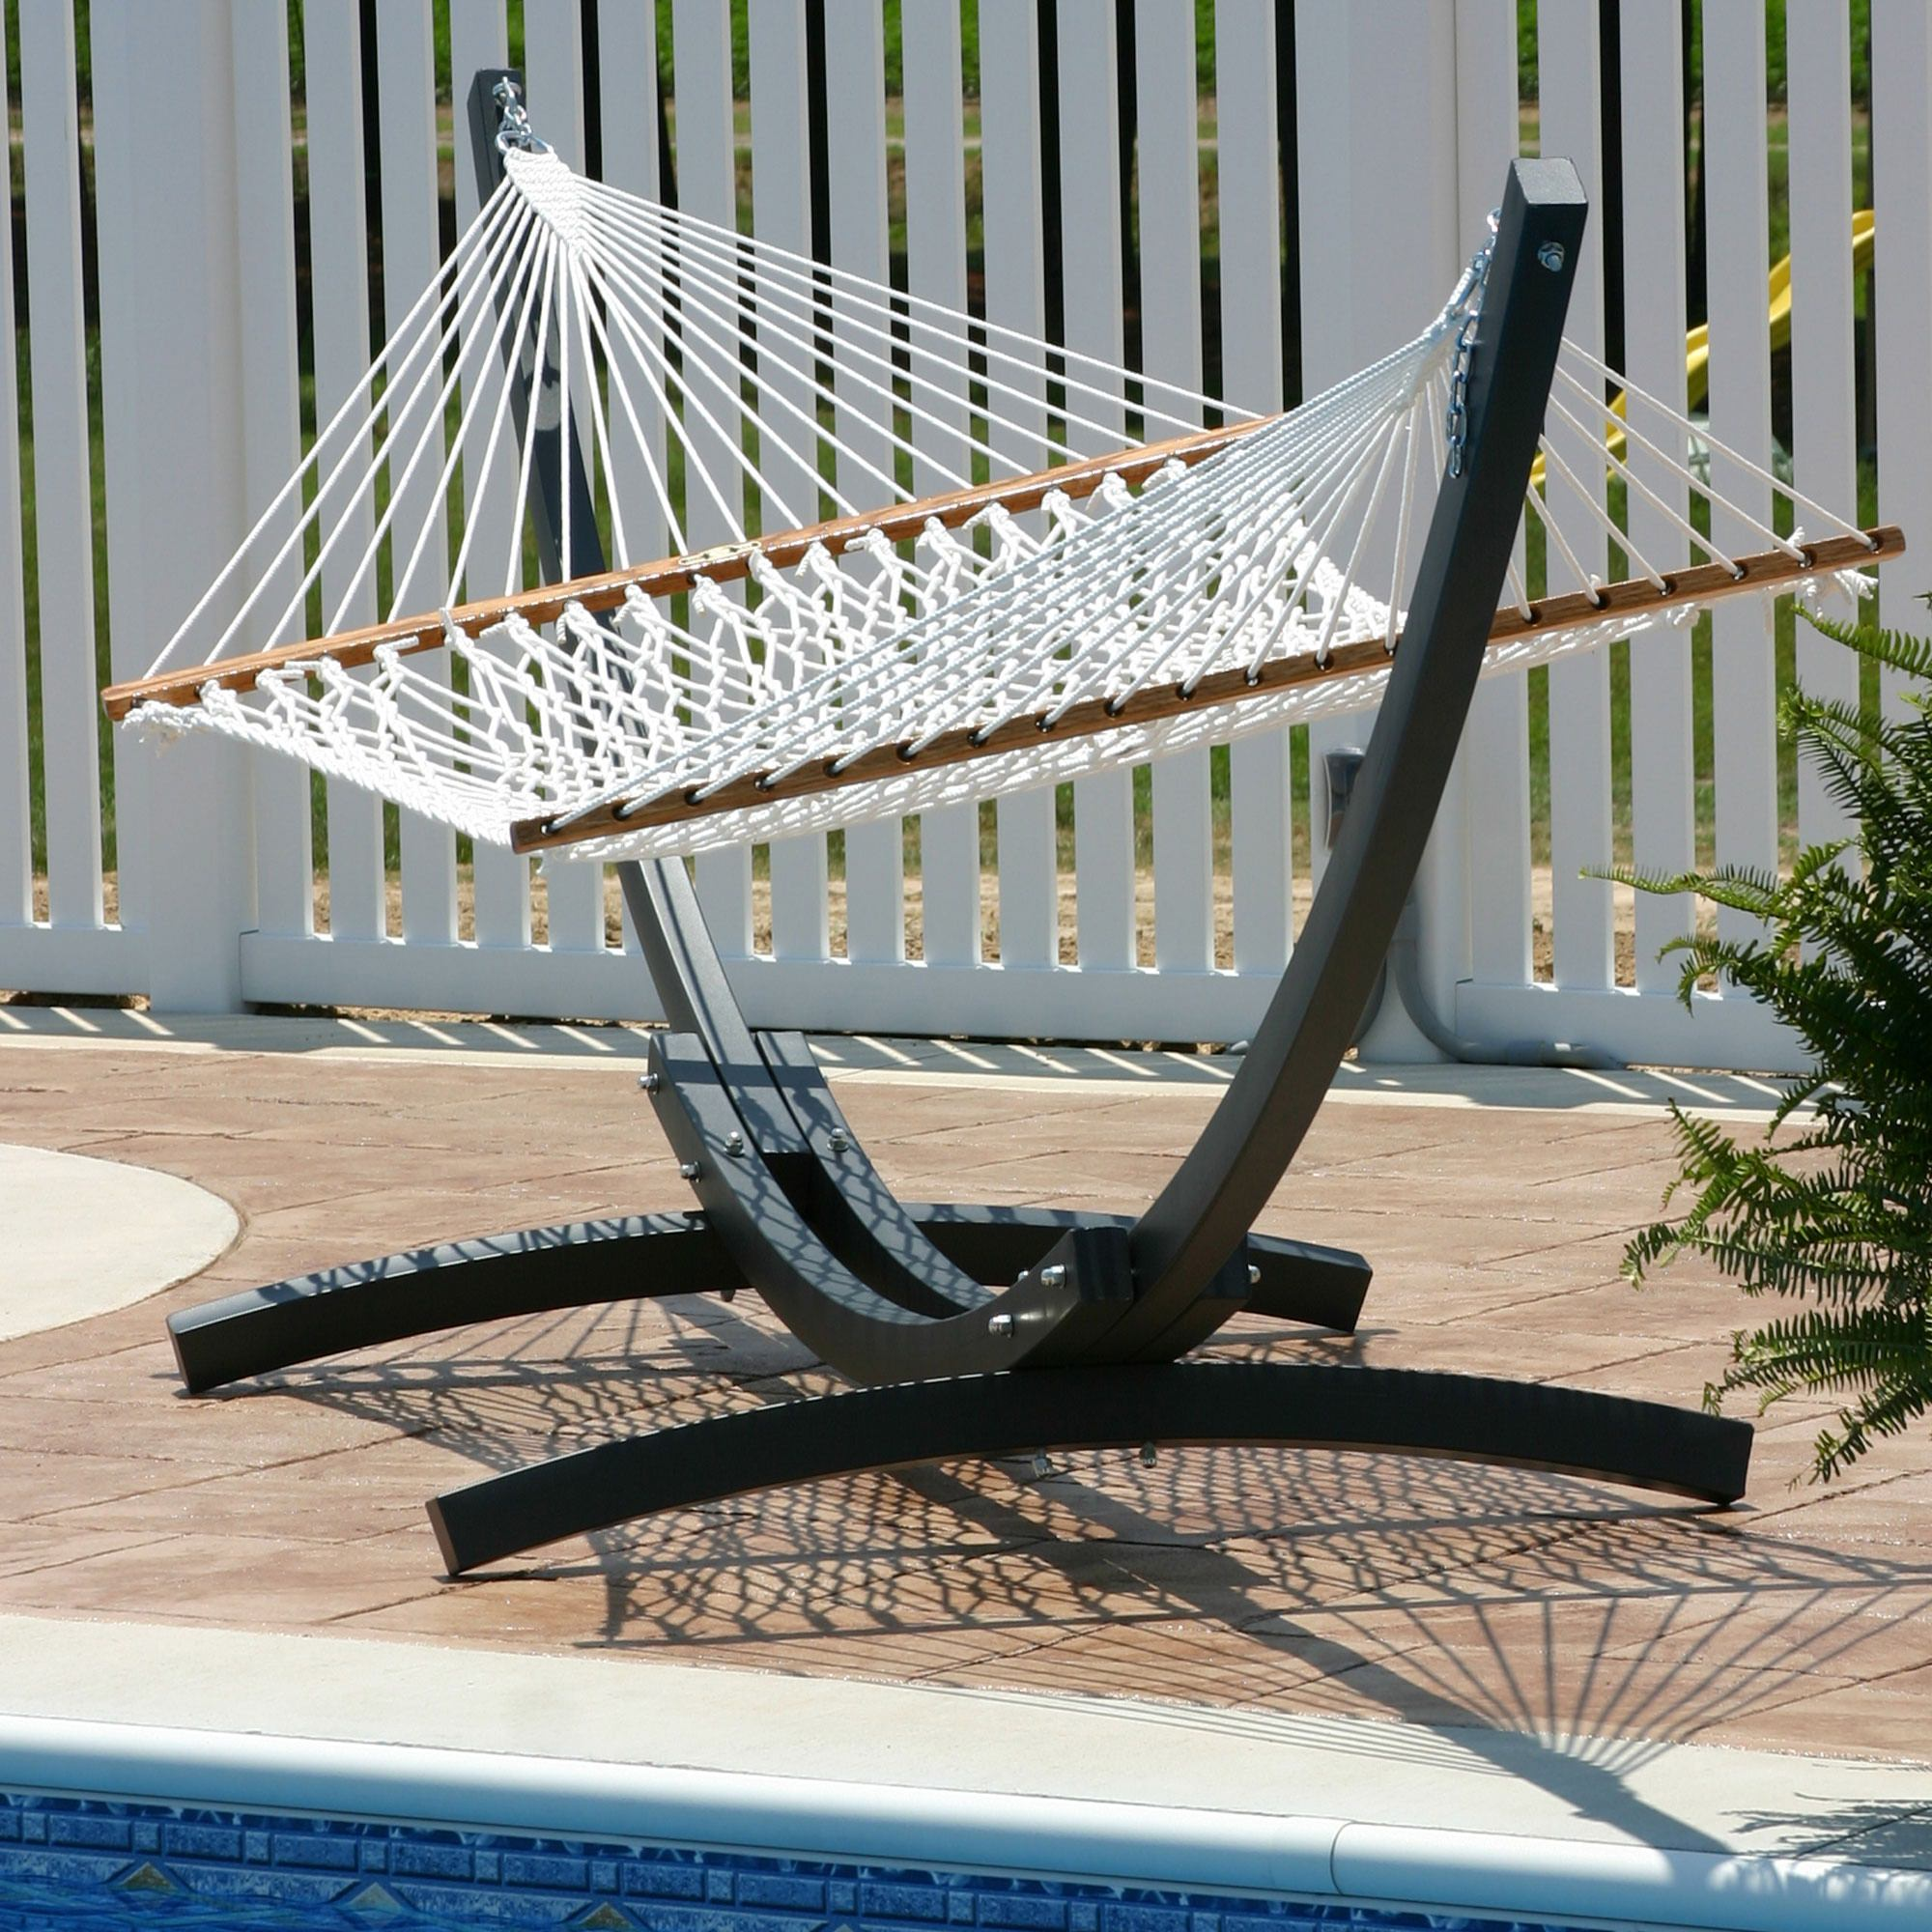 small patio luxury design outdoor avaz striped furniture eclectic with backyard delivered citrus hammocks l hammock